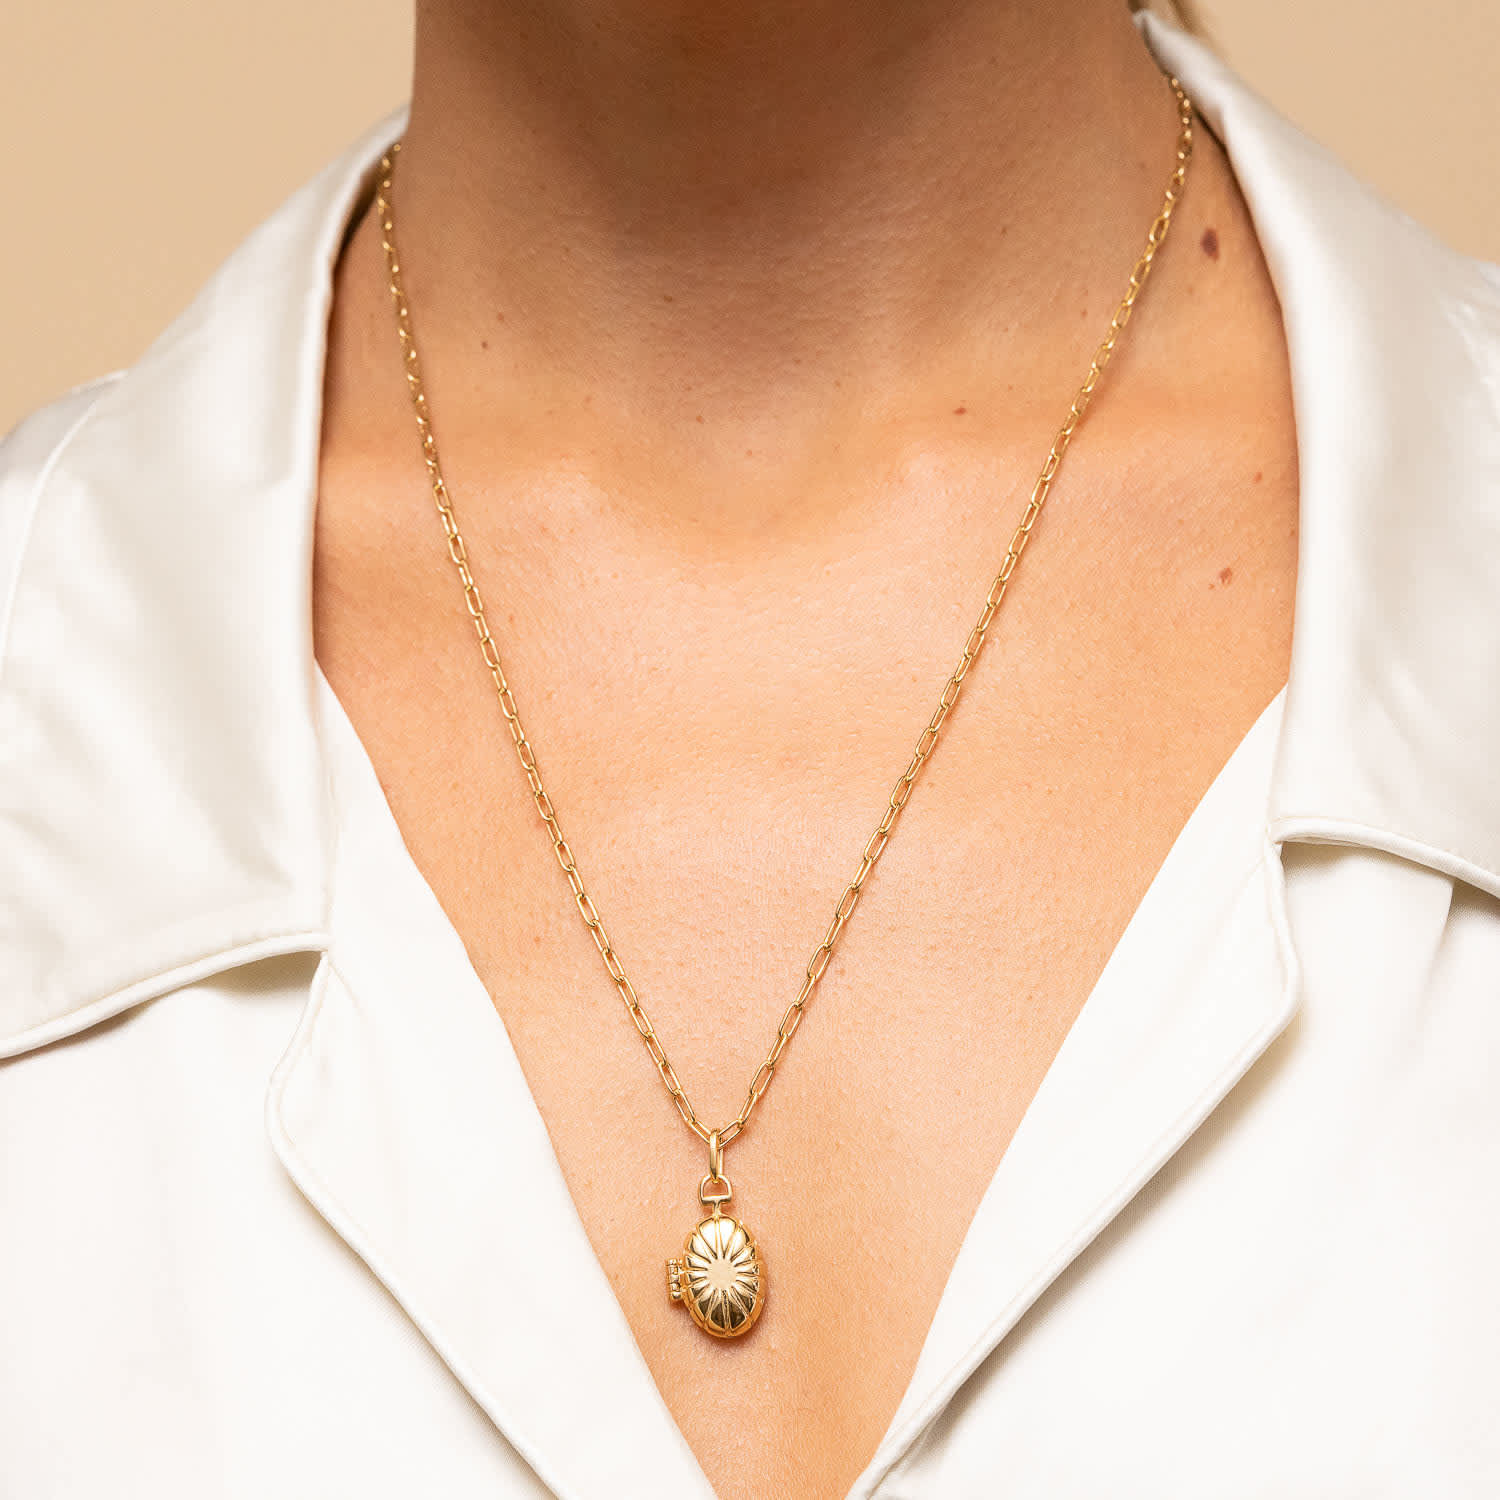 A person wearing a locket necklaces